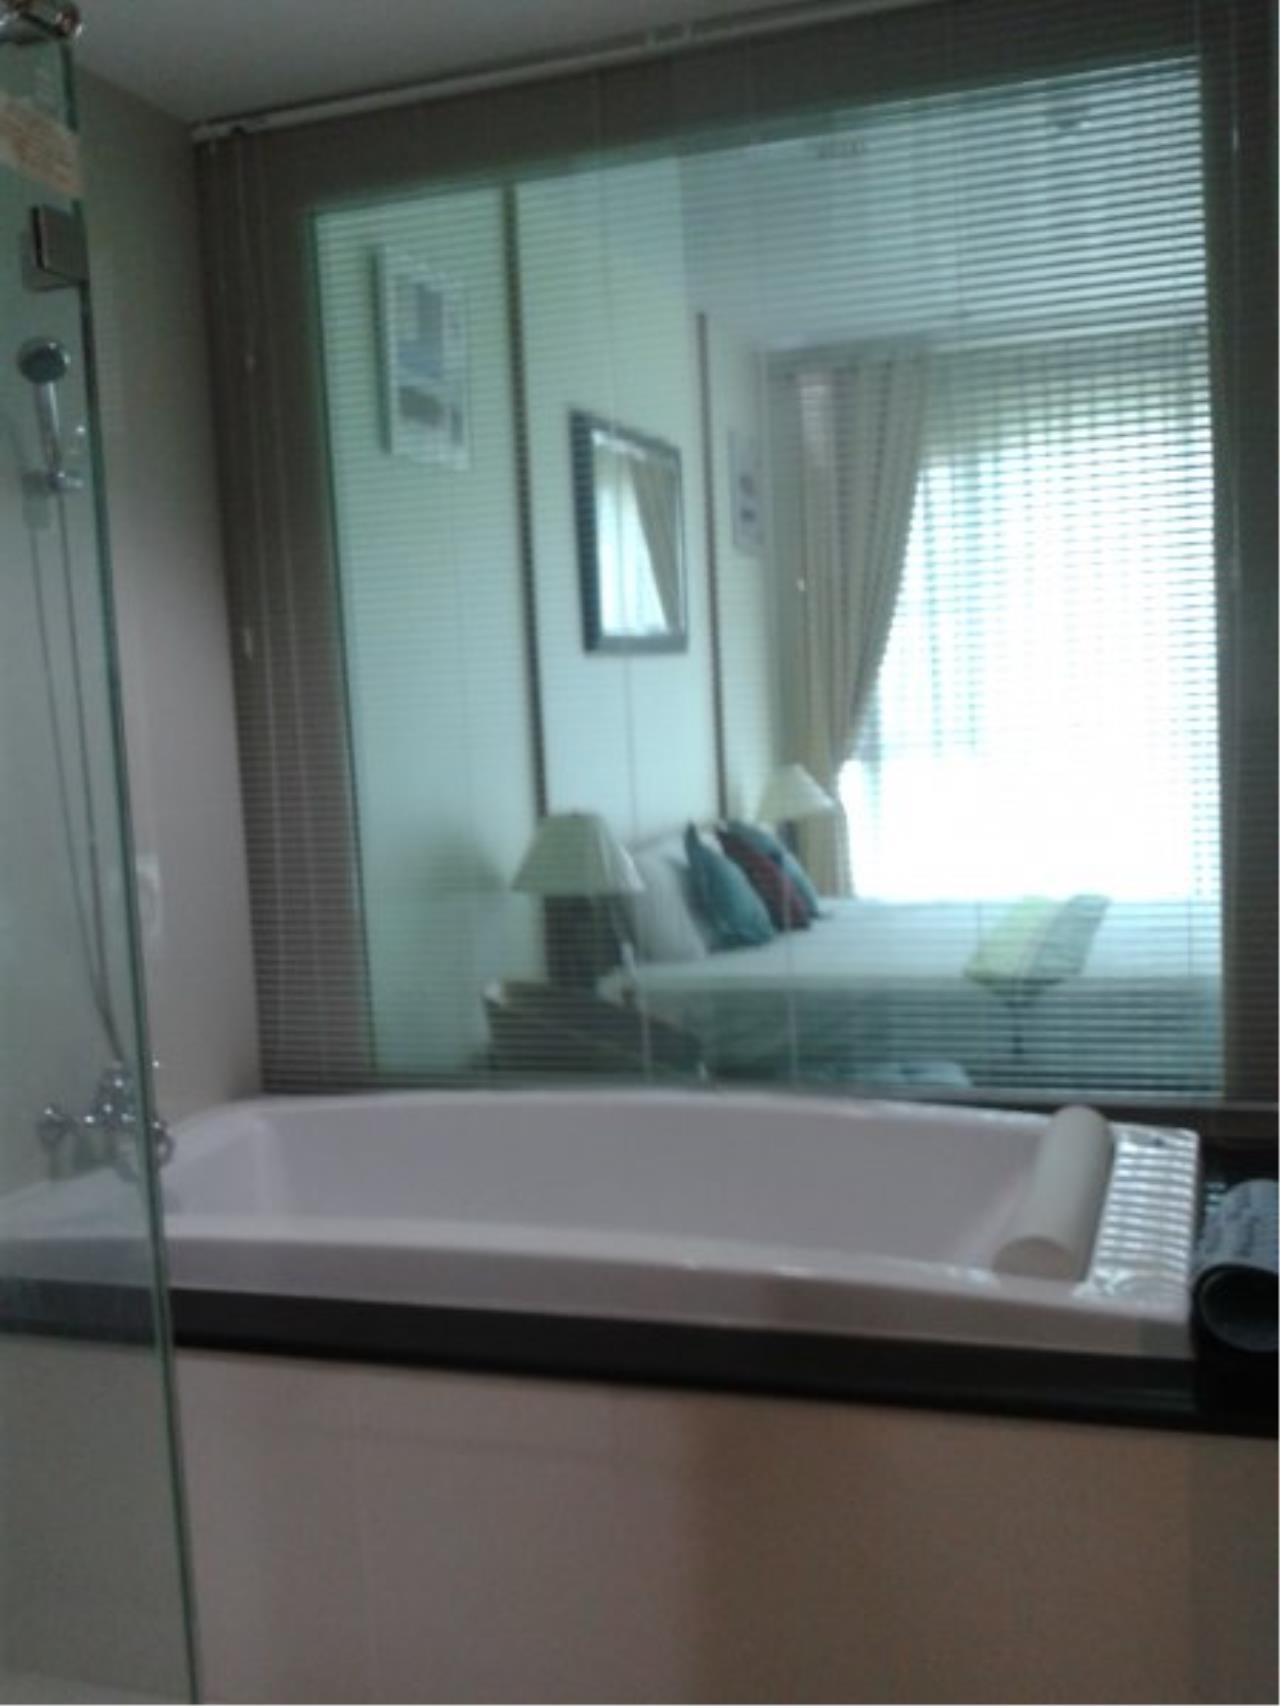 Piri Property Agency's Comfort 2 Bedrooms in The Address Chidlom Condo for rent 6